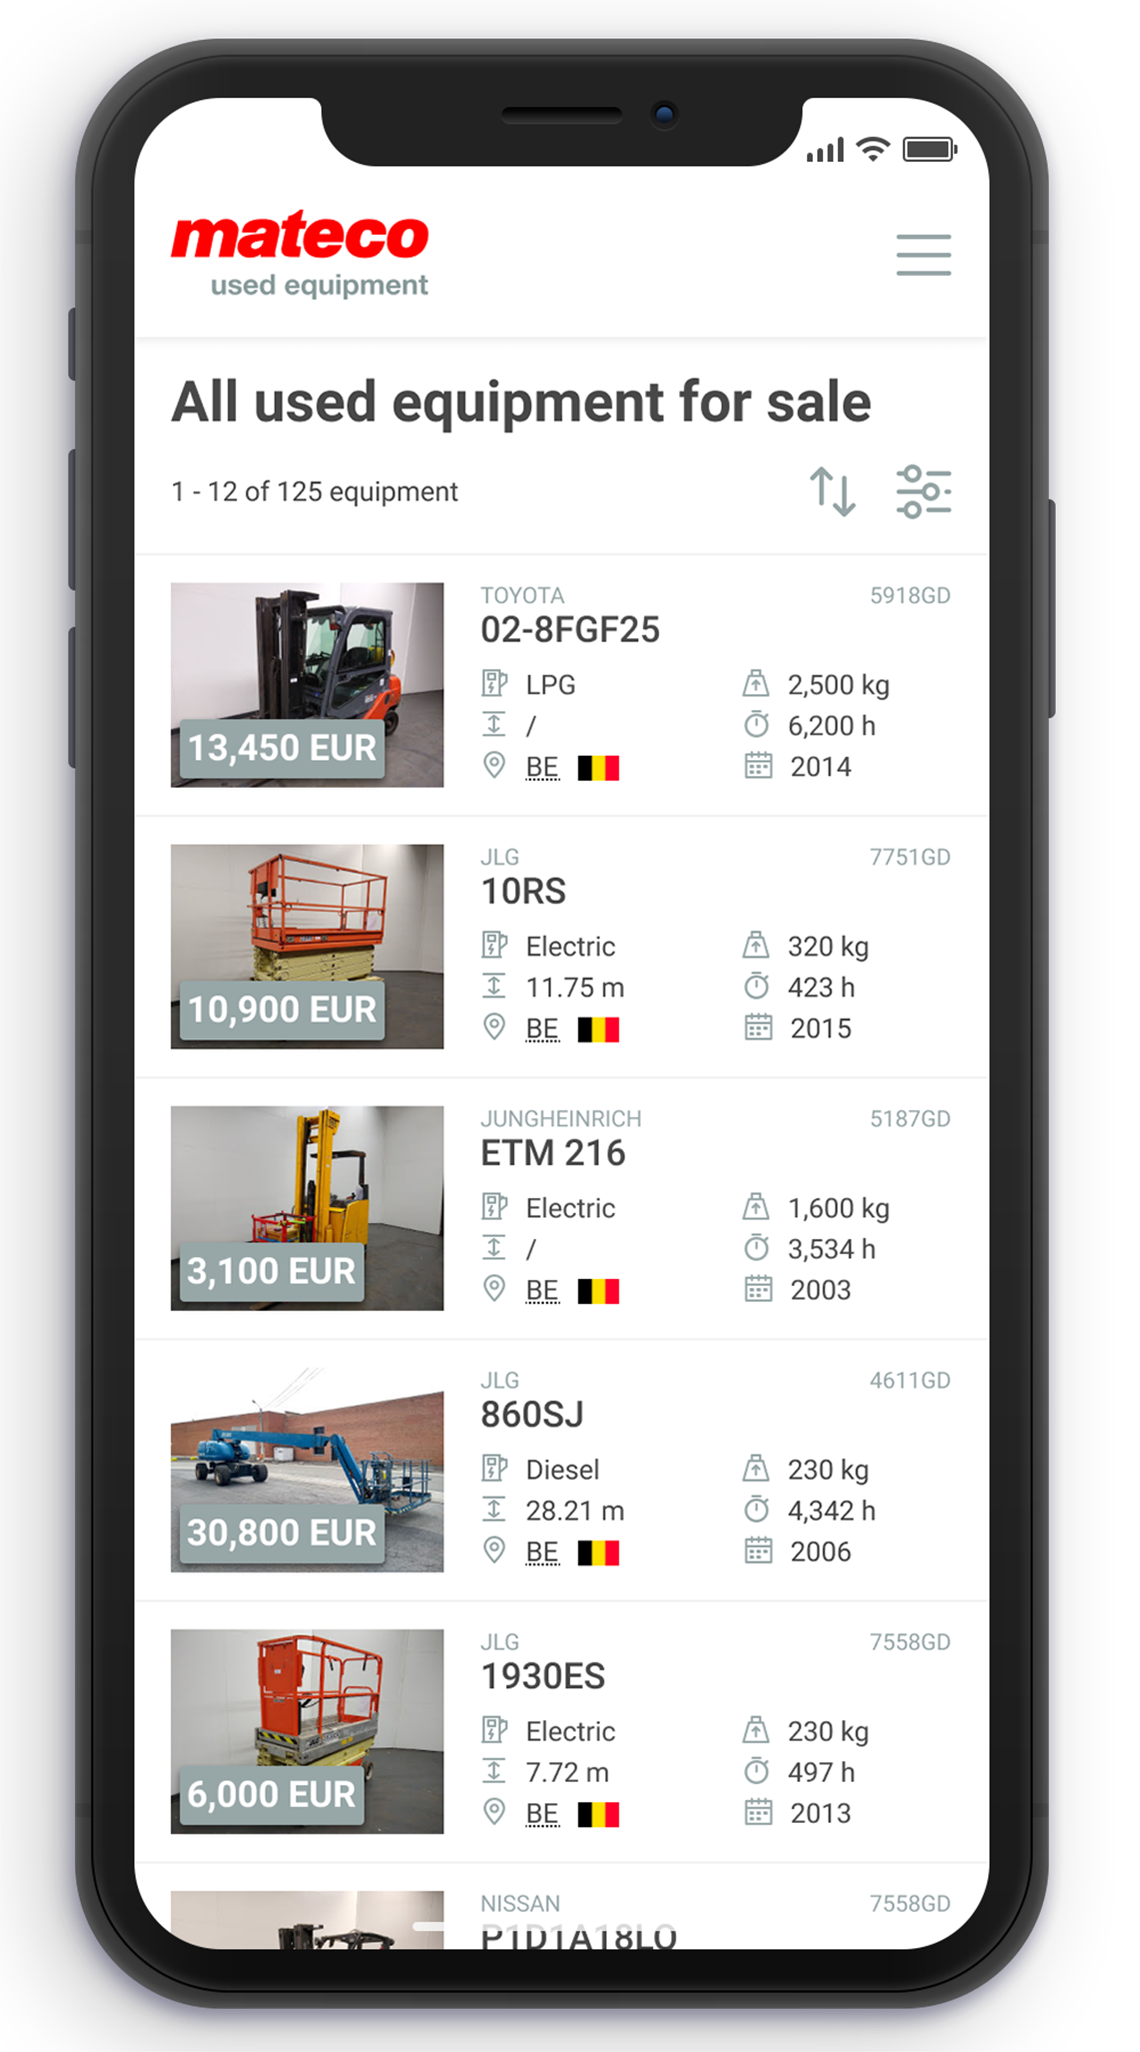 Mateco used equipment smart phone app